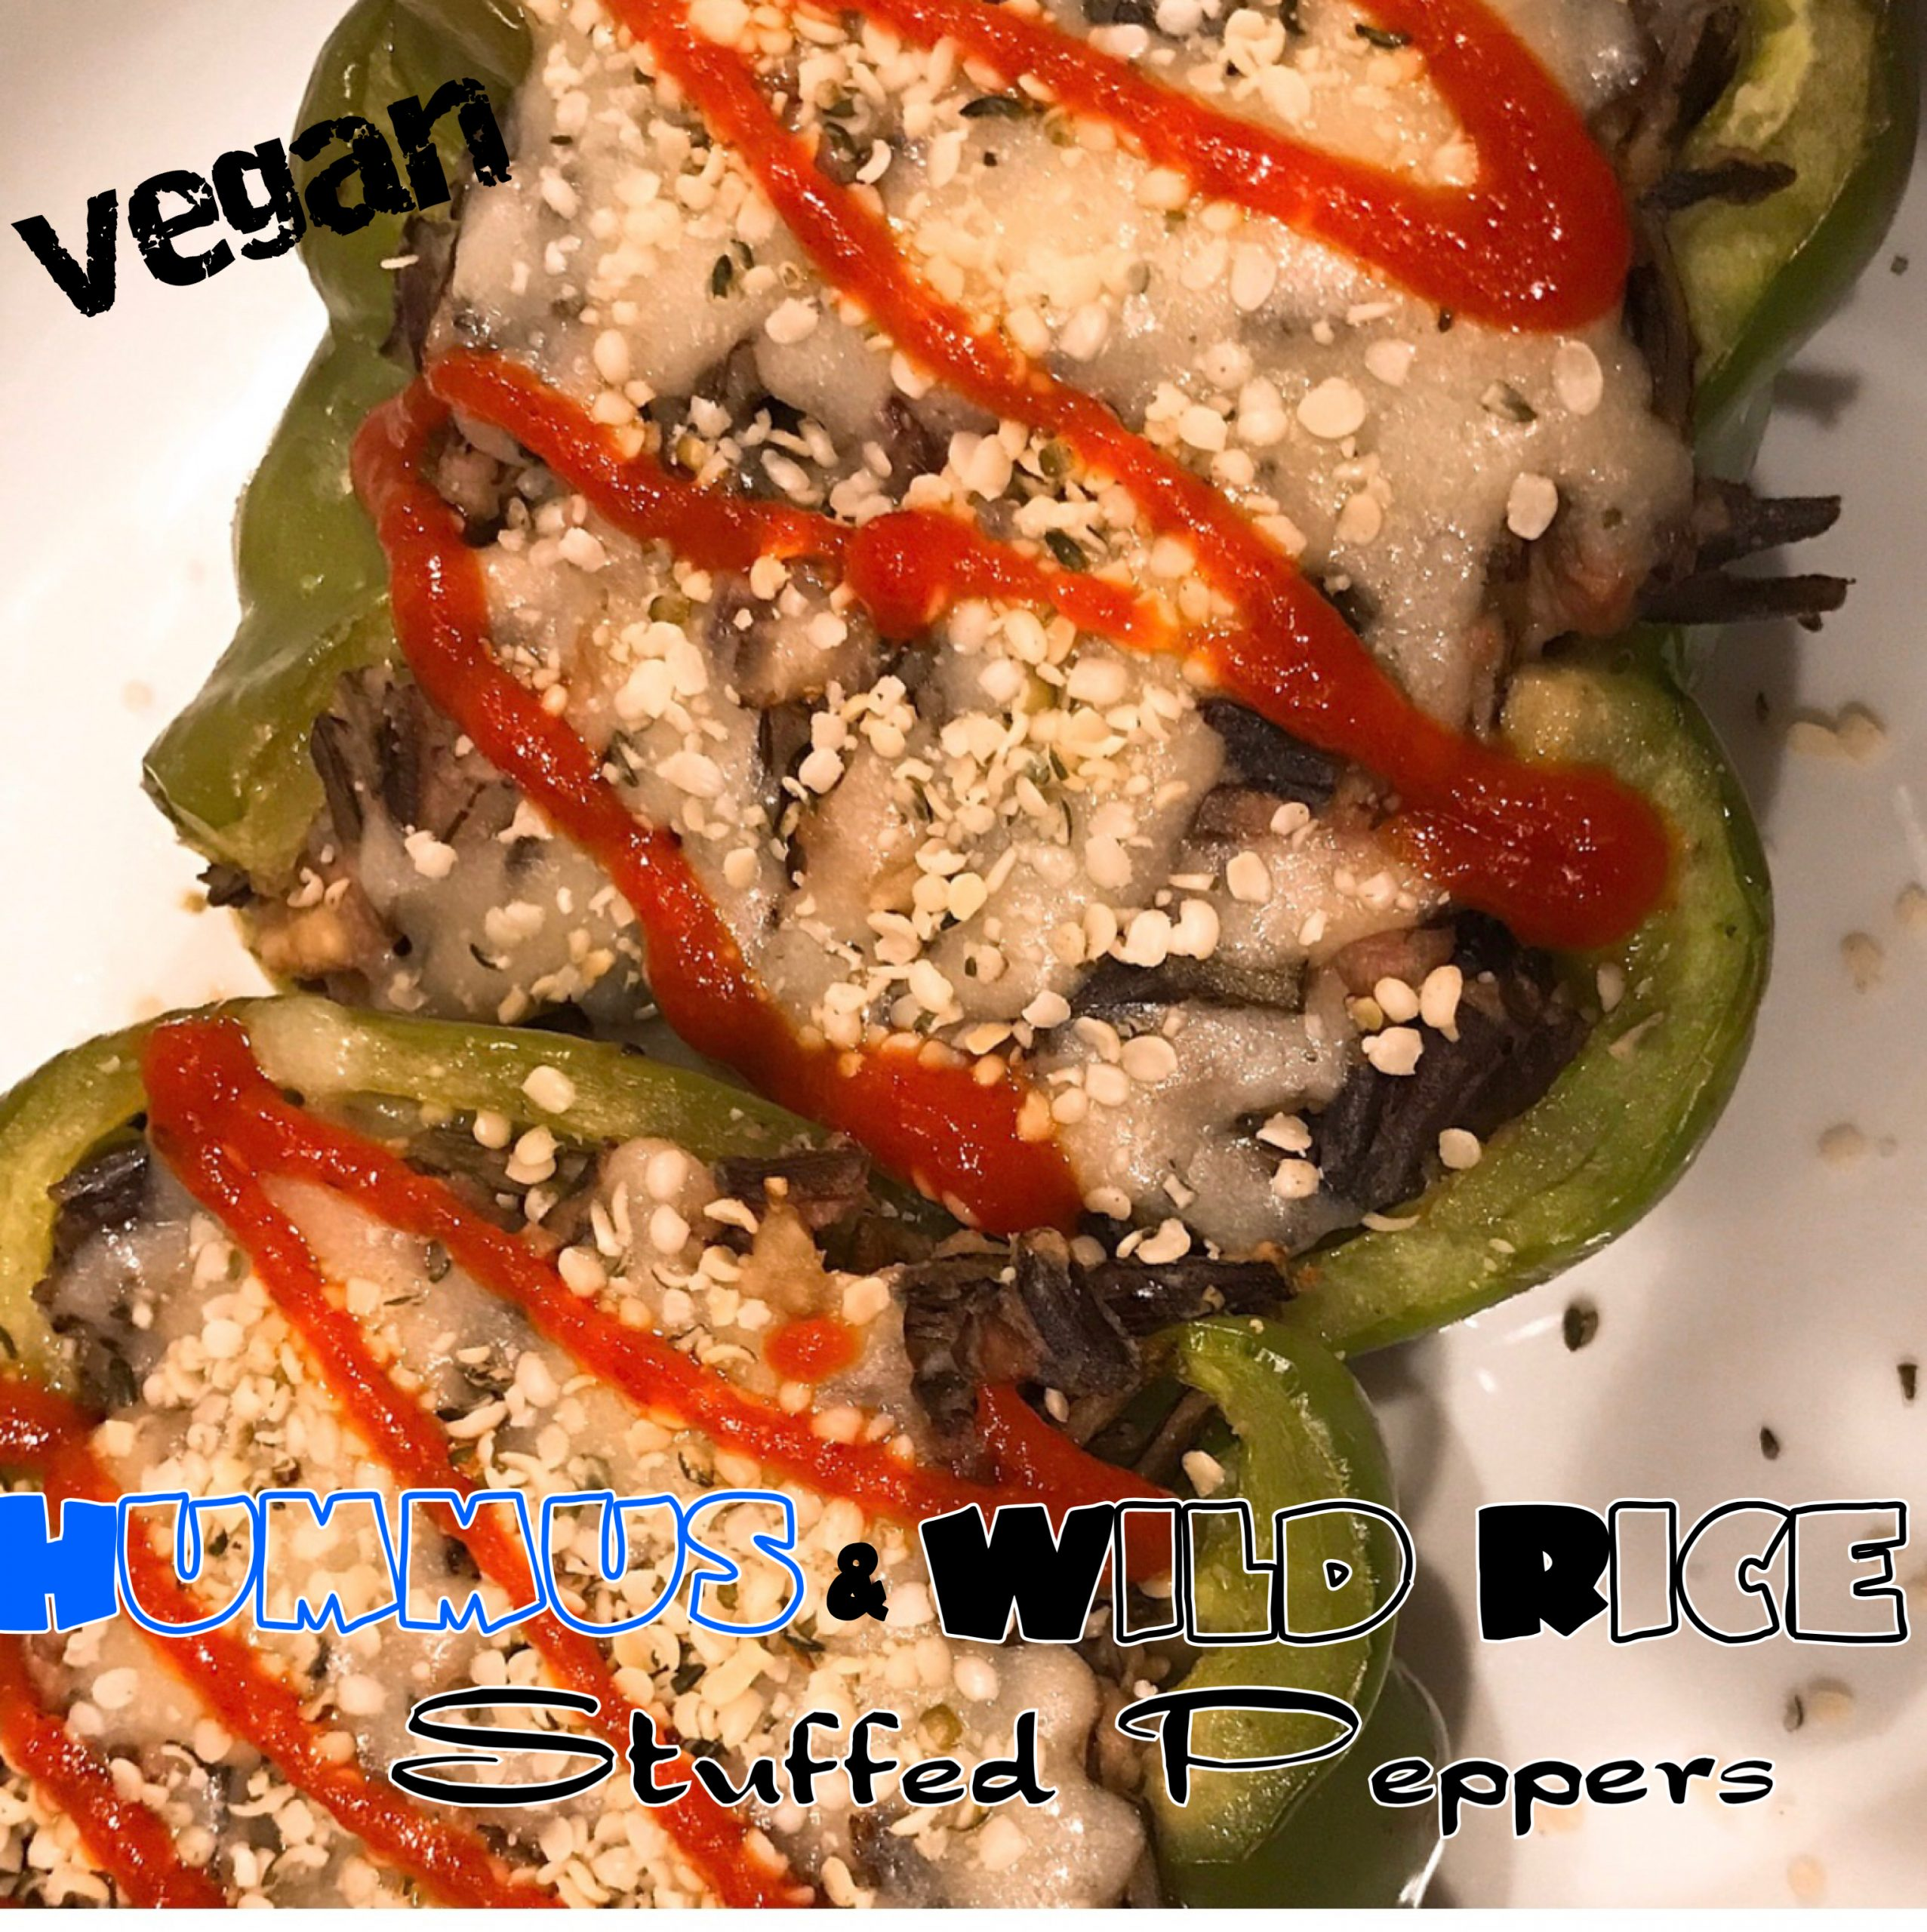 Vegan Hummus & Wild Rice Stuffed Peppers